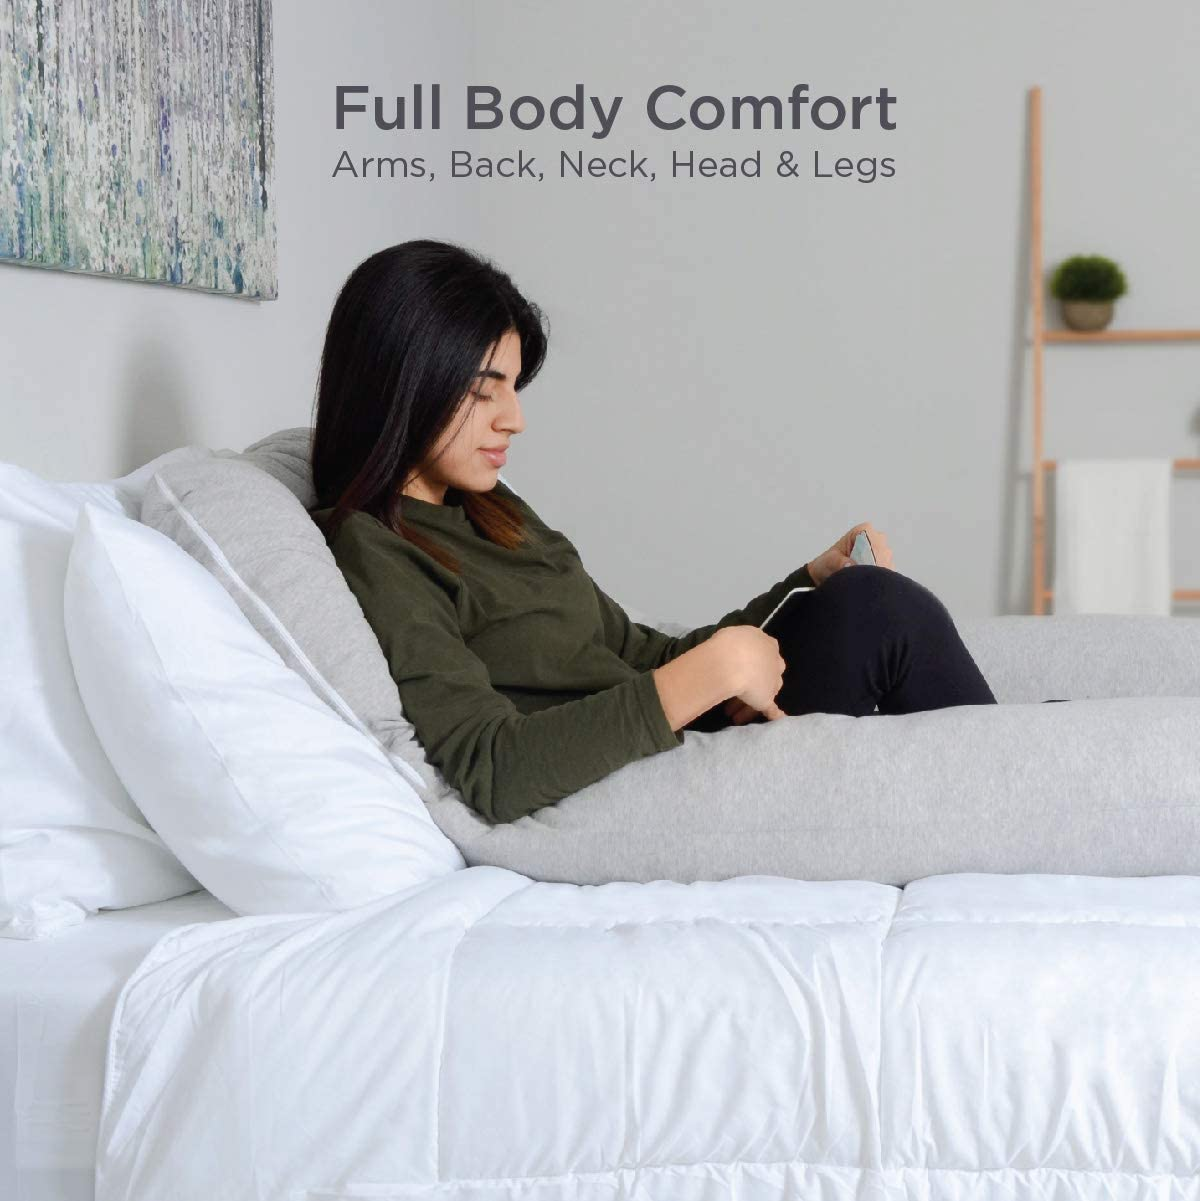 milliard u shaped total body support pillow memory foam with cool cotton breathable cover 54 inch